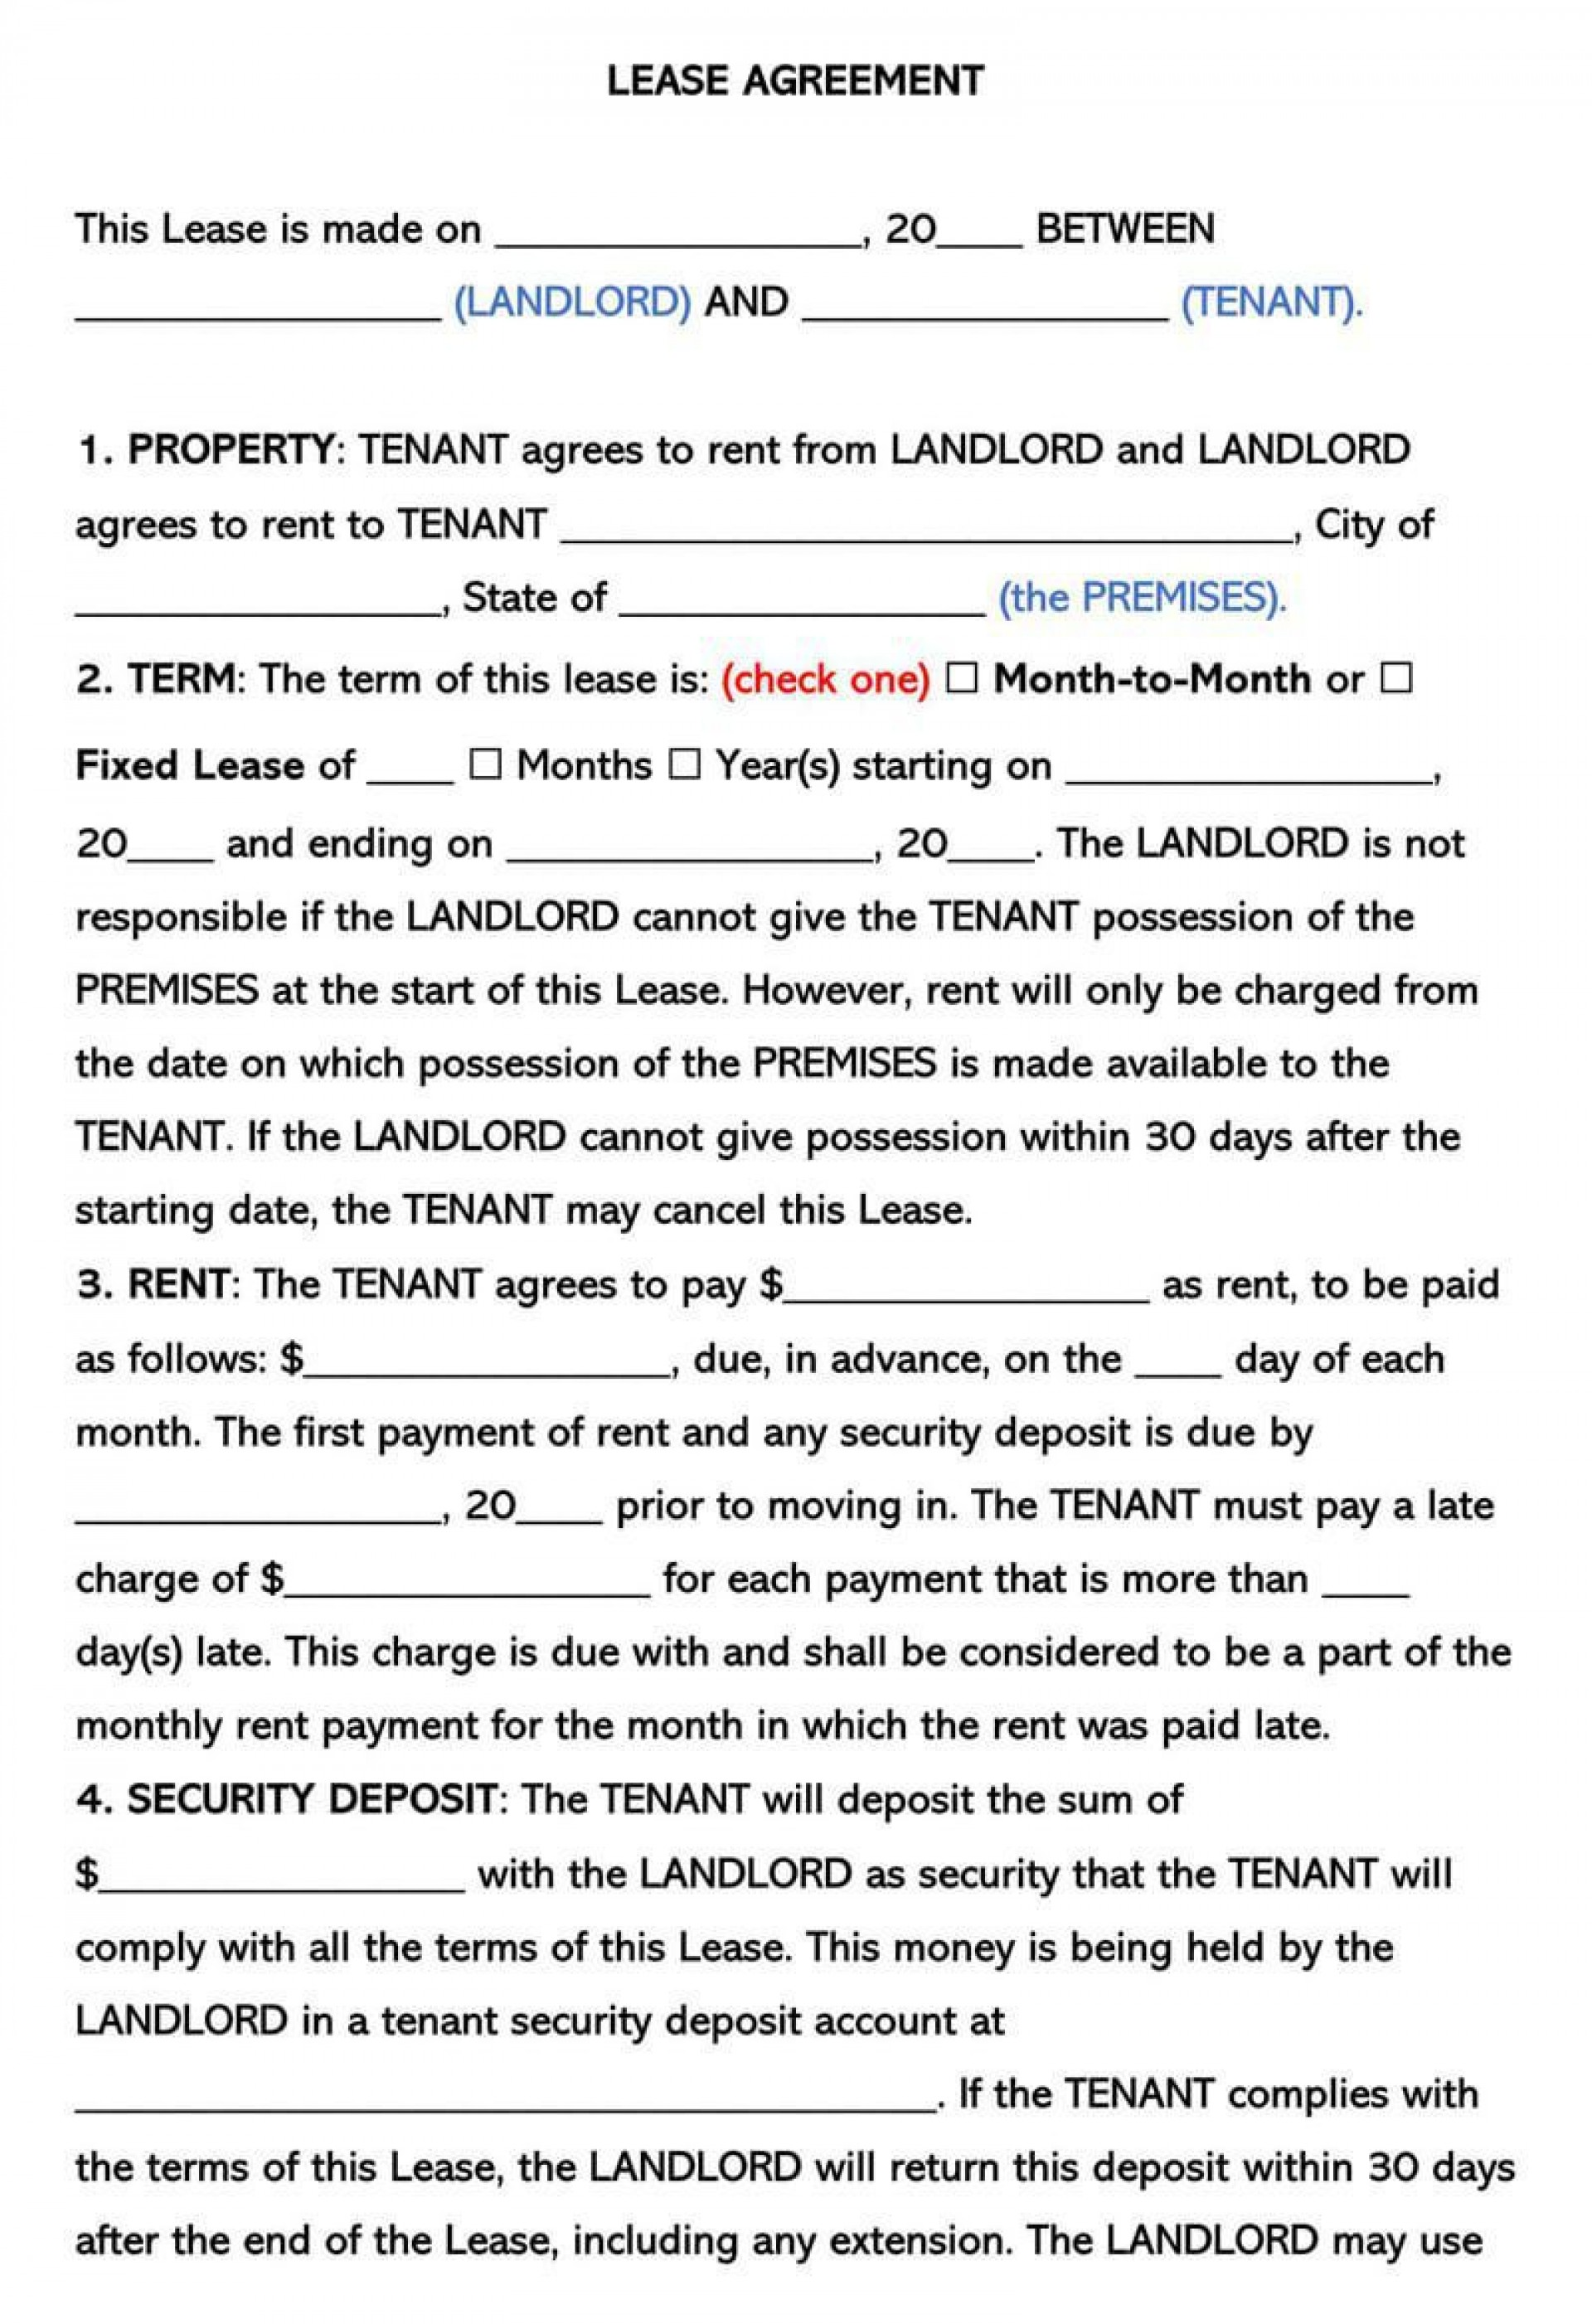 003 Stunning Apartment Lease Agreement Form Texa Example 1920